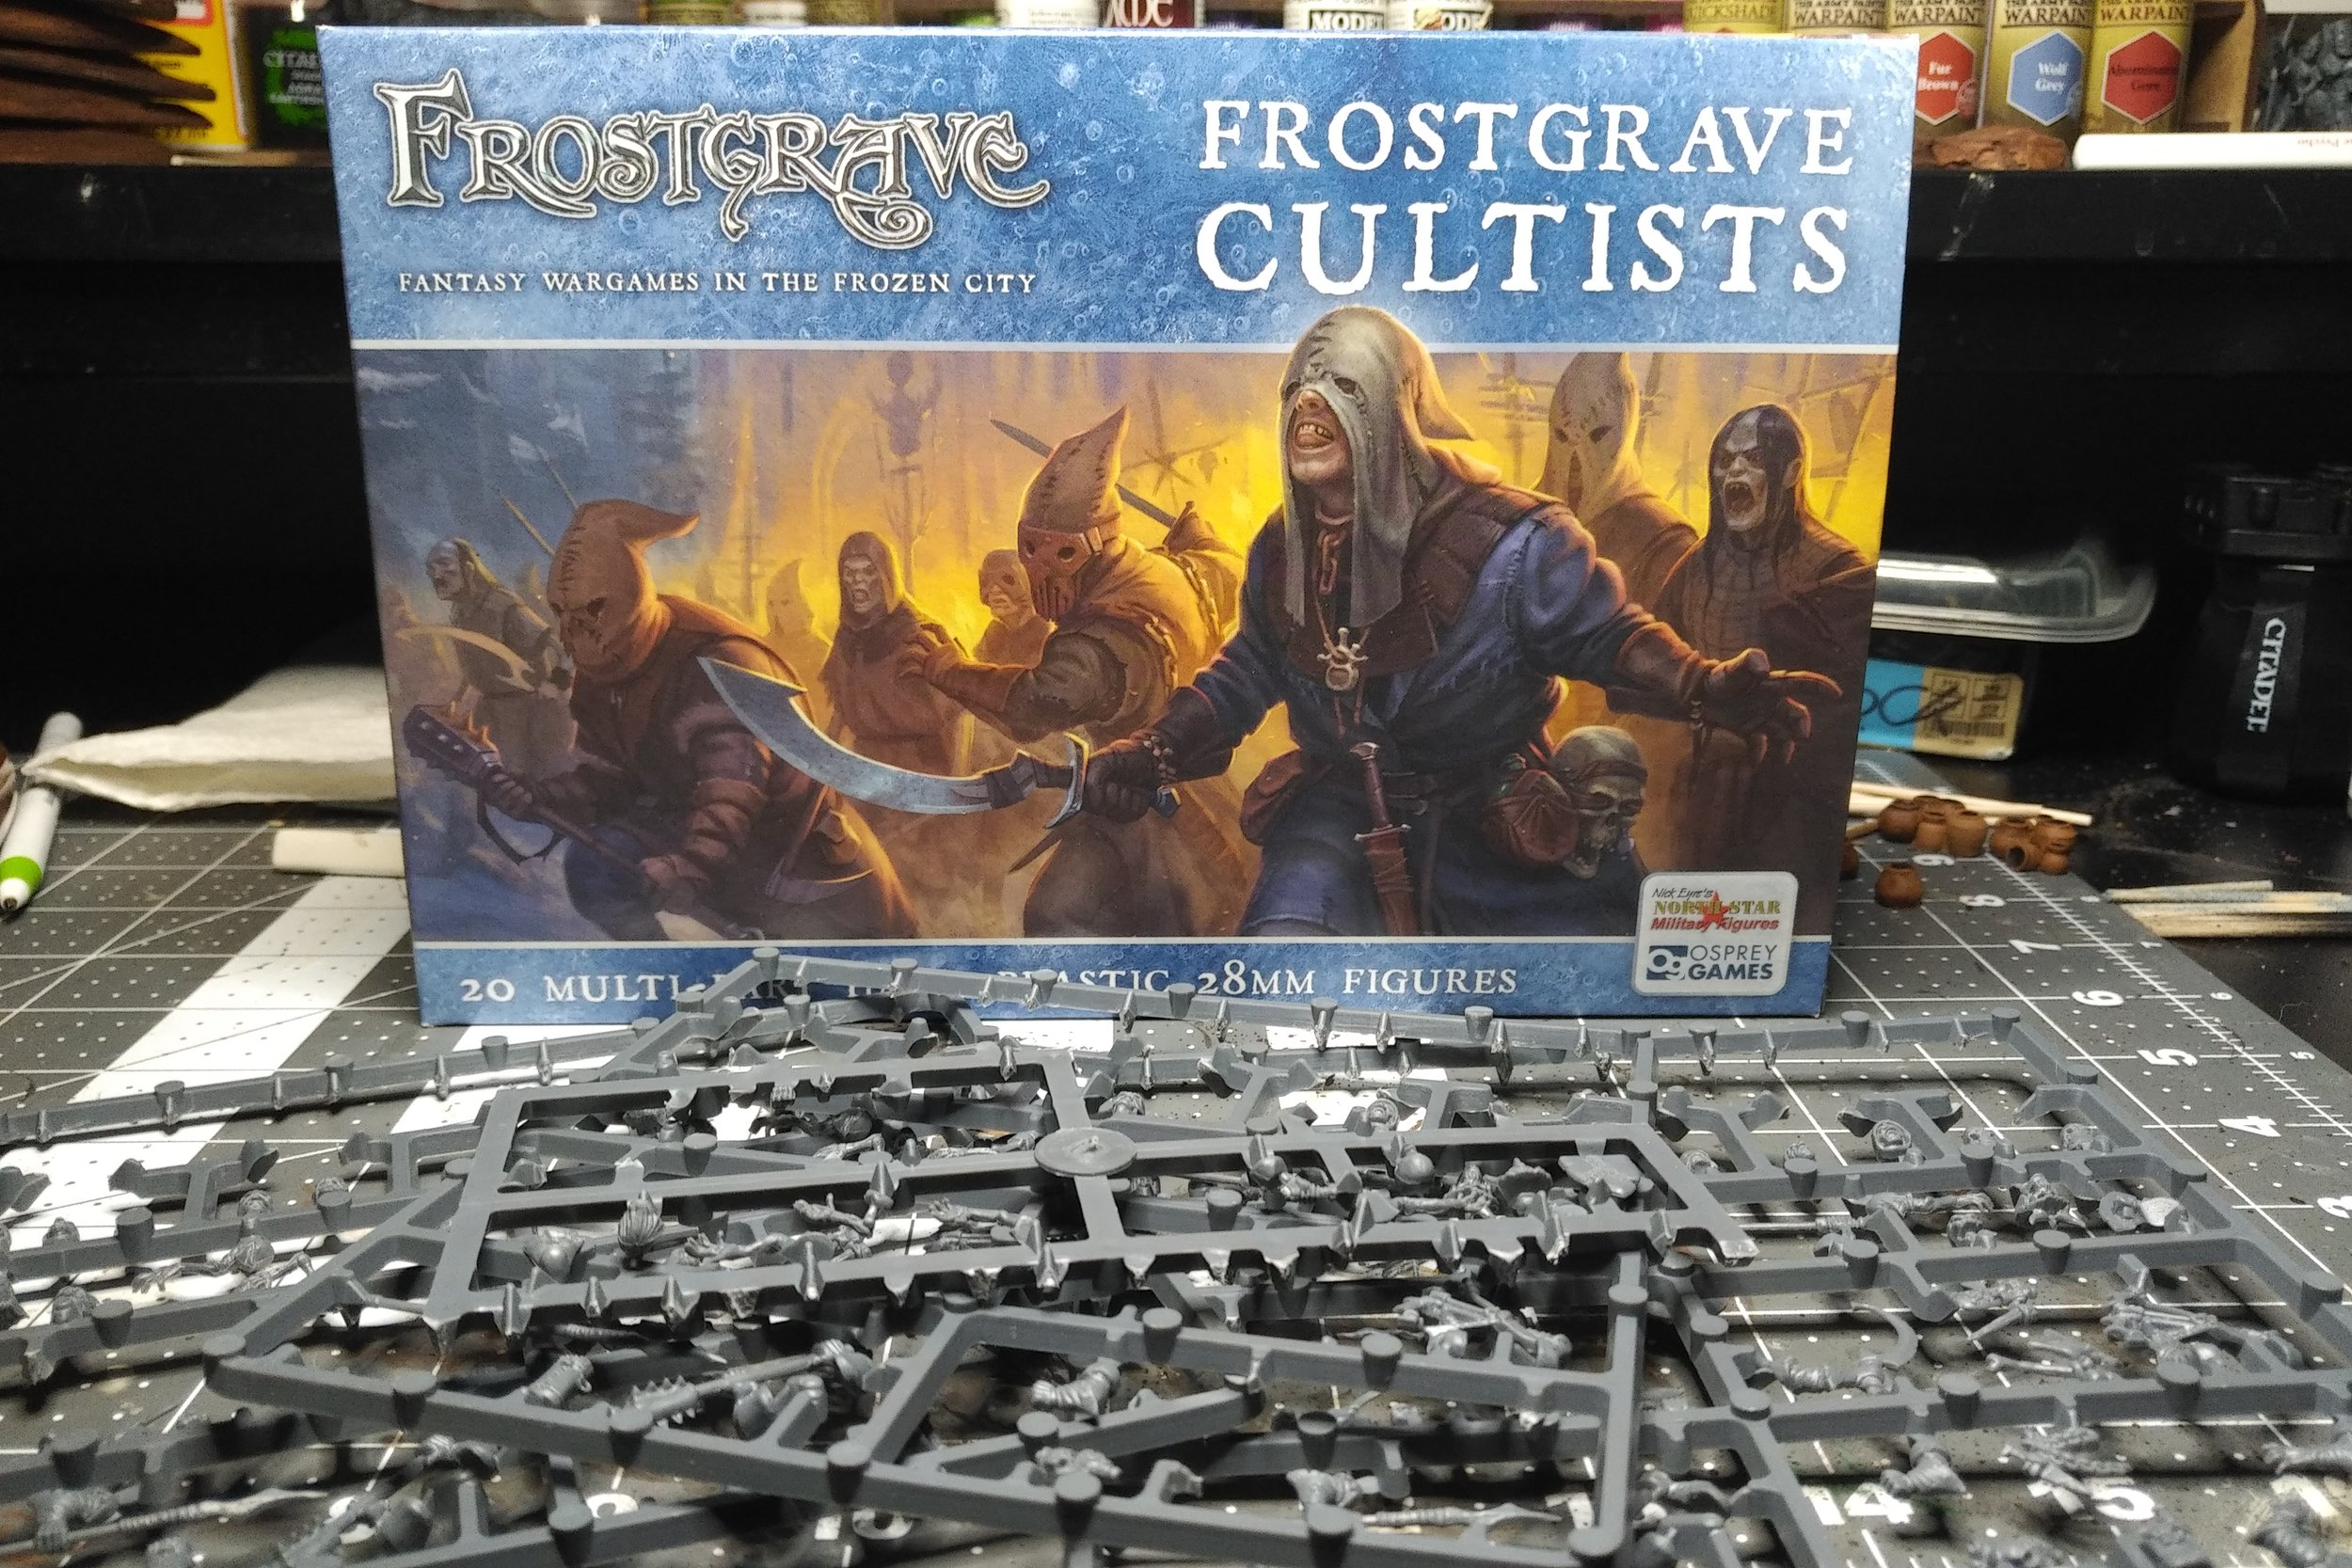 Frostgrave: Cultists - Sister Hazel, Satheris, and the Cult of Dagon